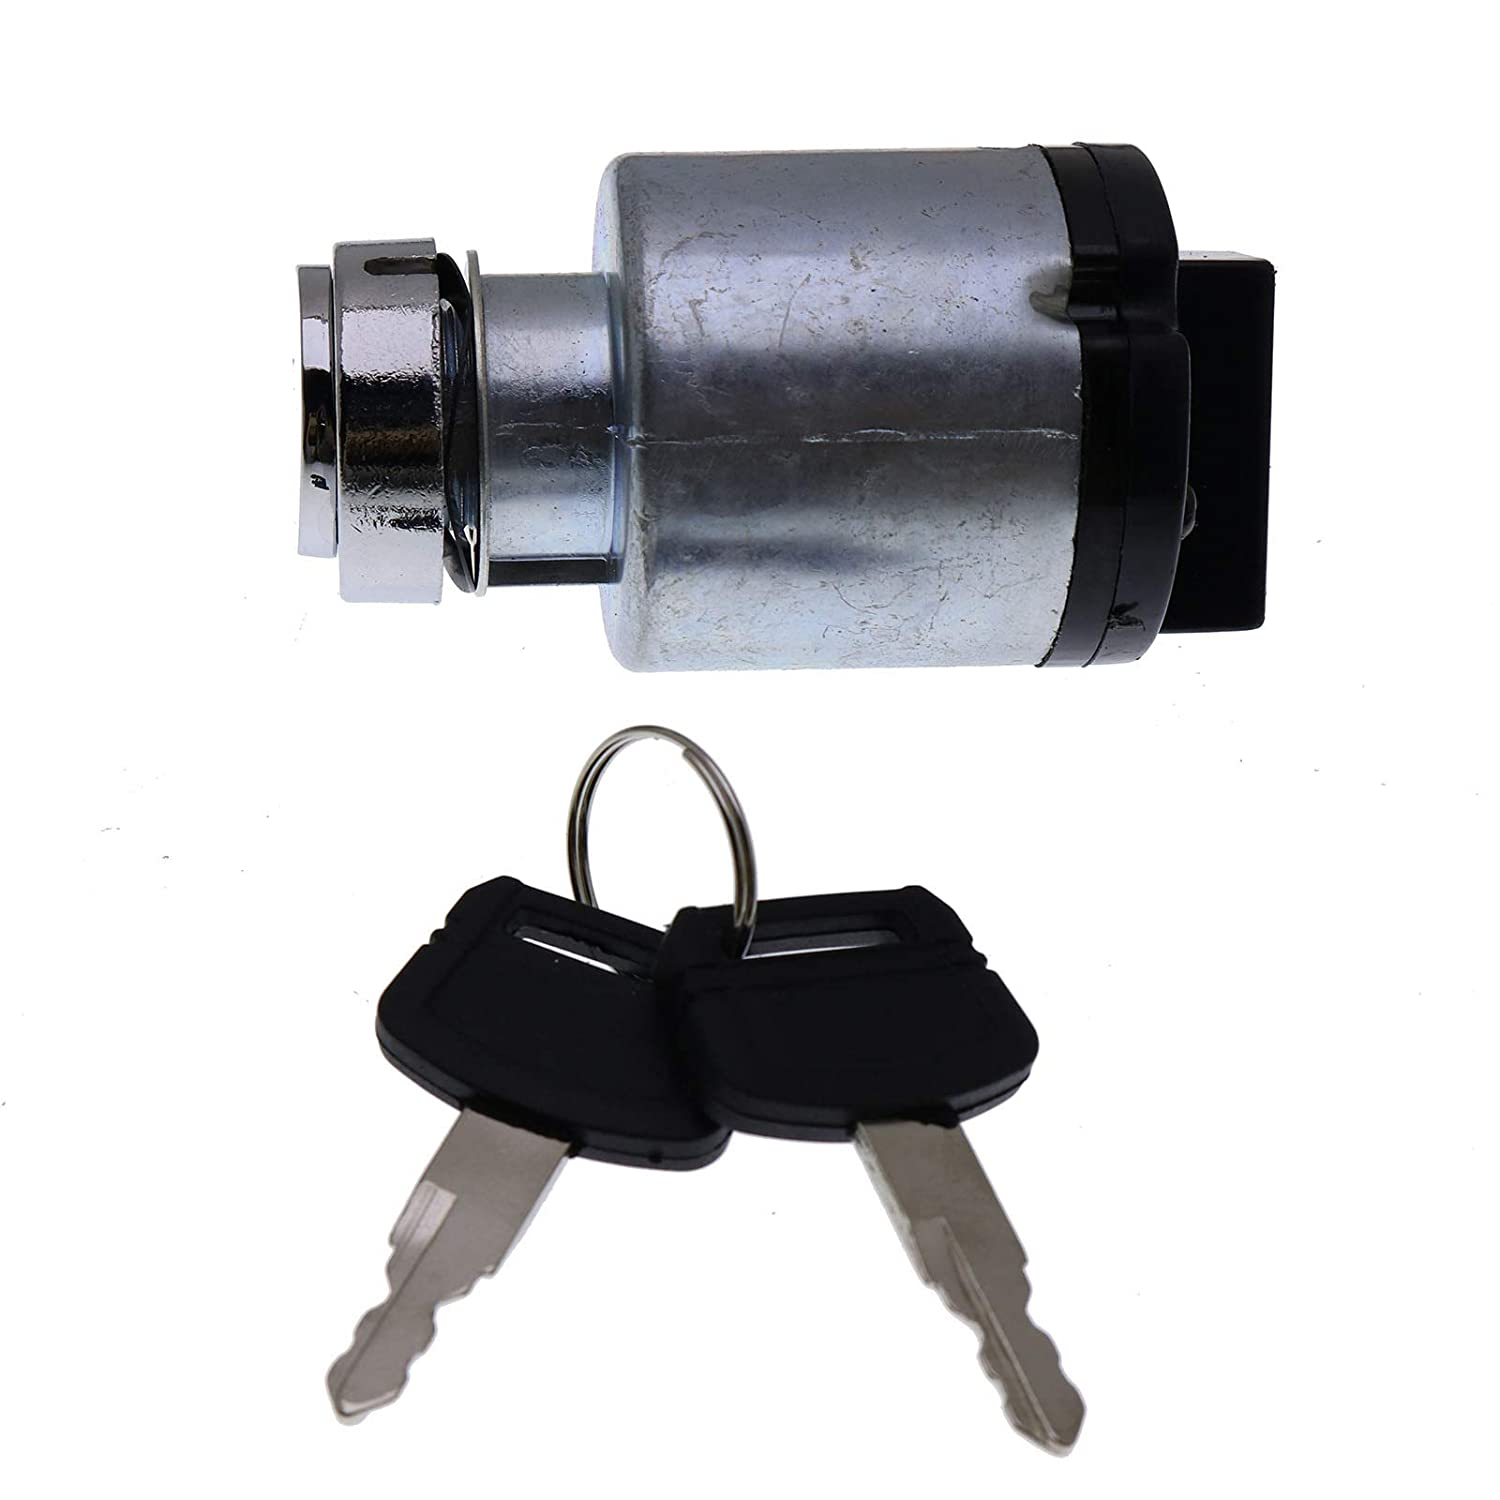 STARTER  SWITCH FITS FOR HITACHI AT154992 IGNITION SWITCH JOHN DEERE EXCAVATOR